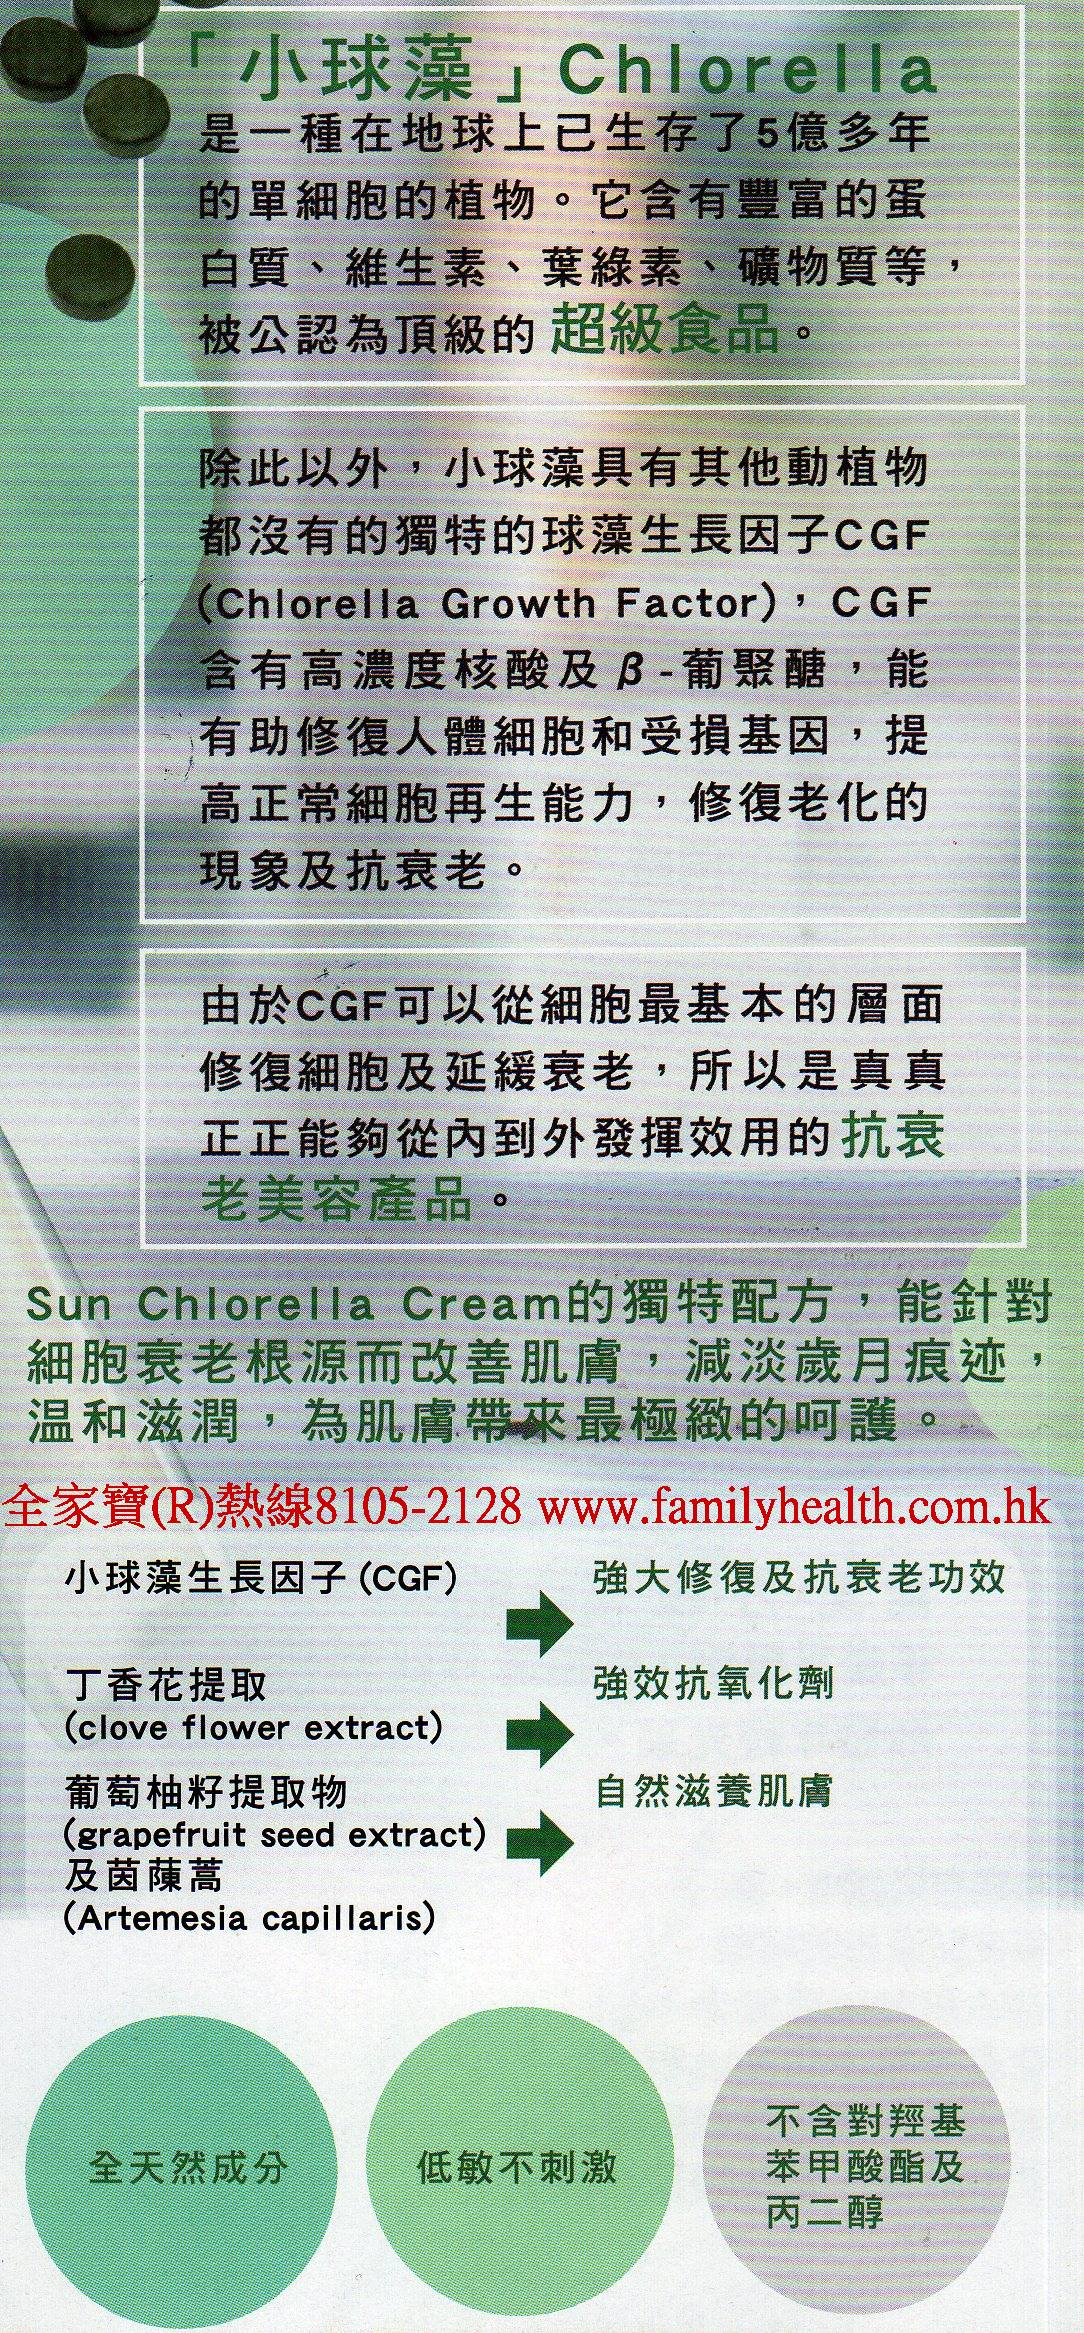 http://www.familyhealth.com.hk/files/full/1033_2.jpg